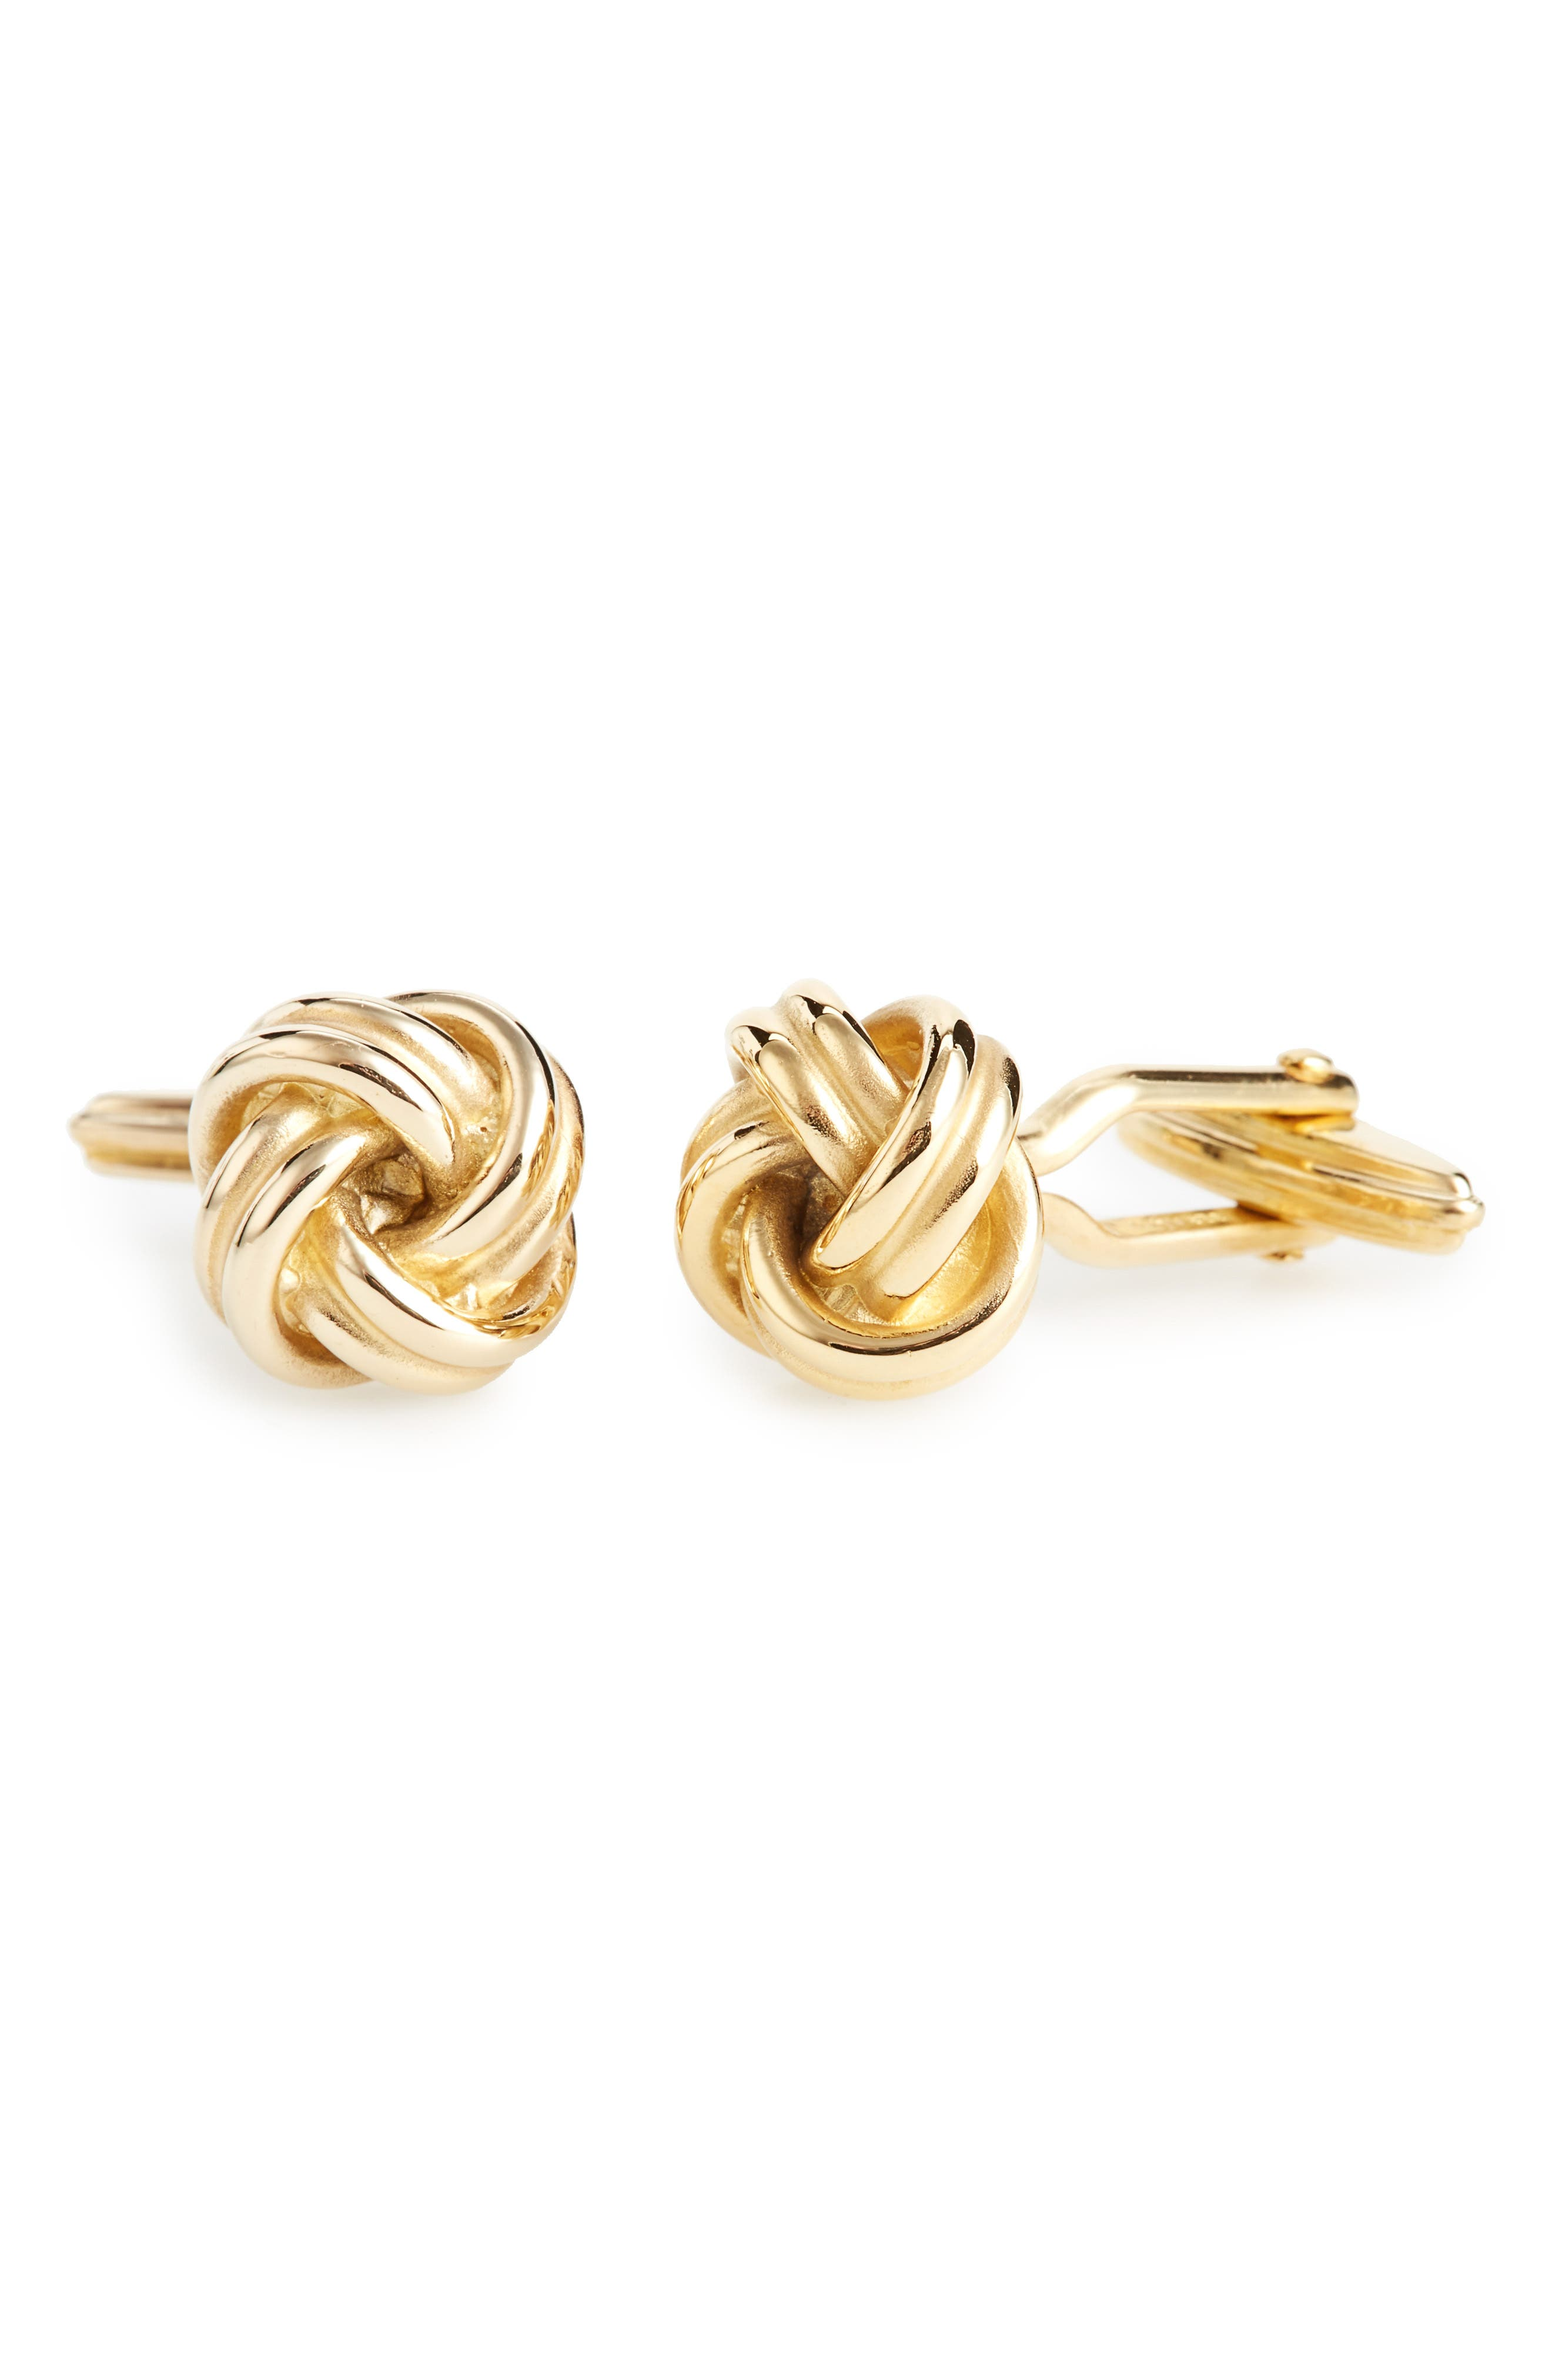 Main Image - Lanvin Knotted Cuff Links